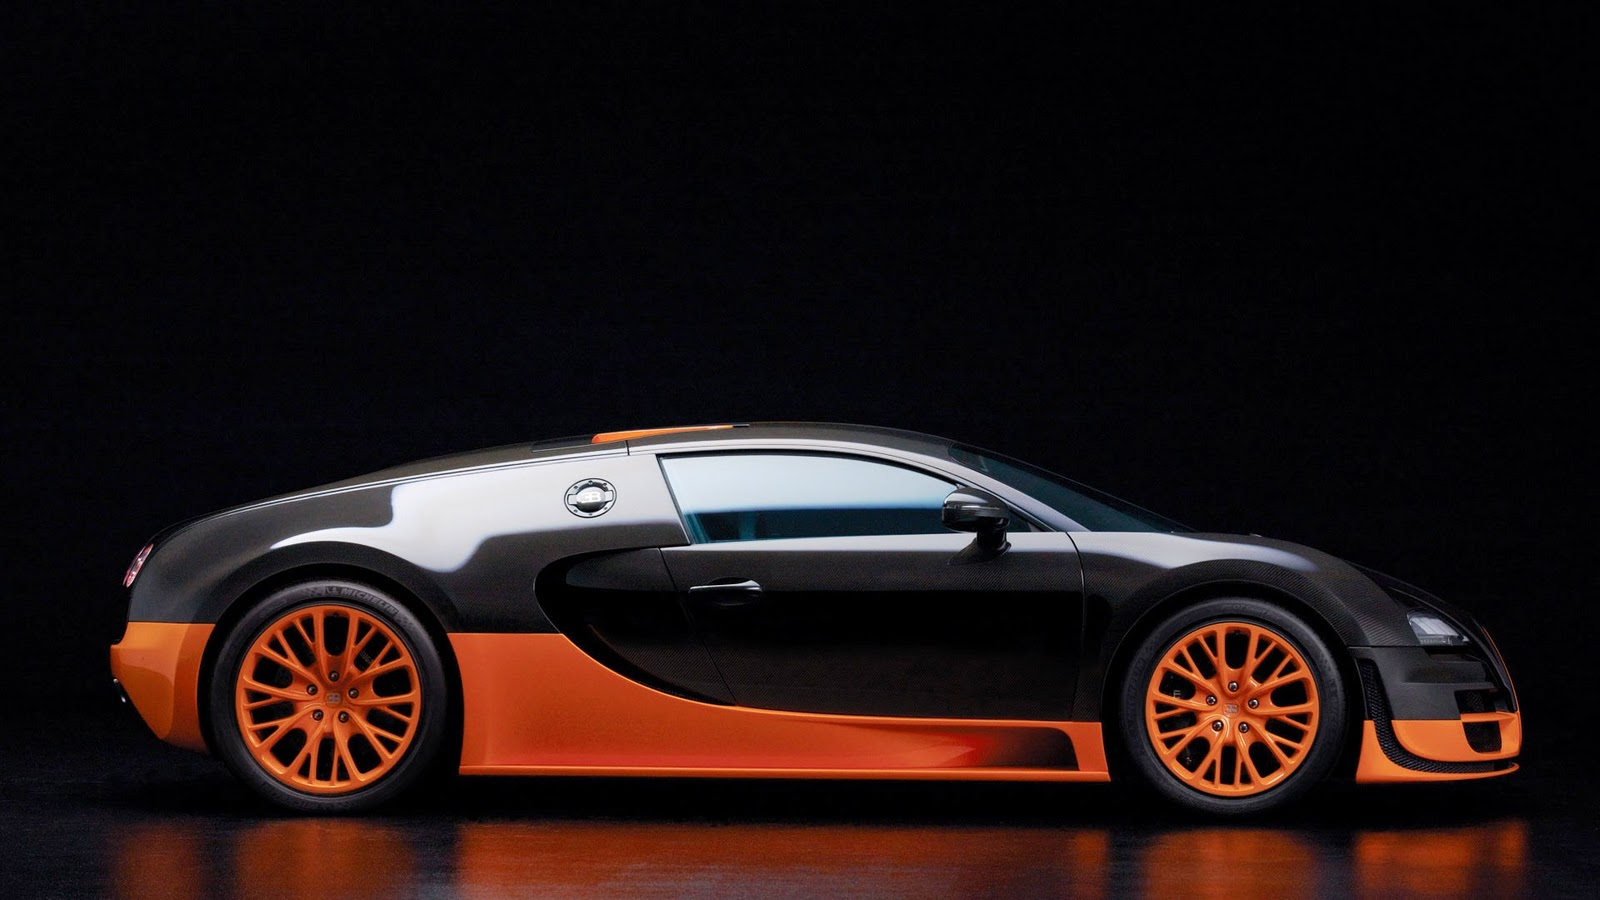 full hd exotic car wallpapers 2011 bugatti veyron 16 4 super sport. Black Bedroom Furniture Sets. Home Design Ideas